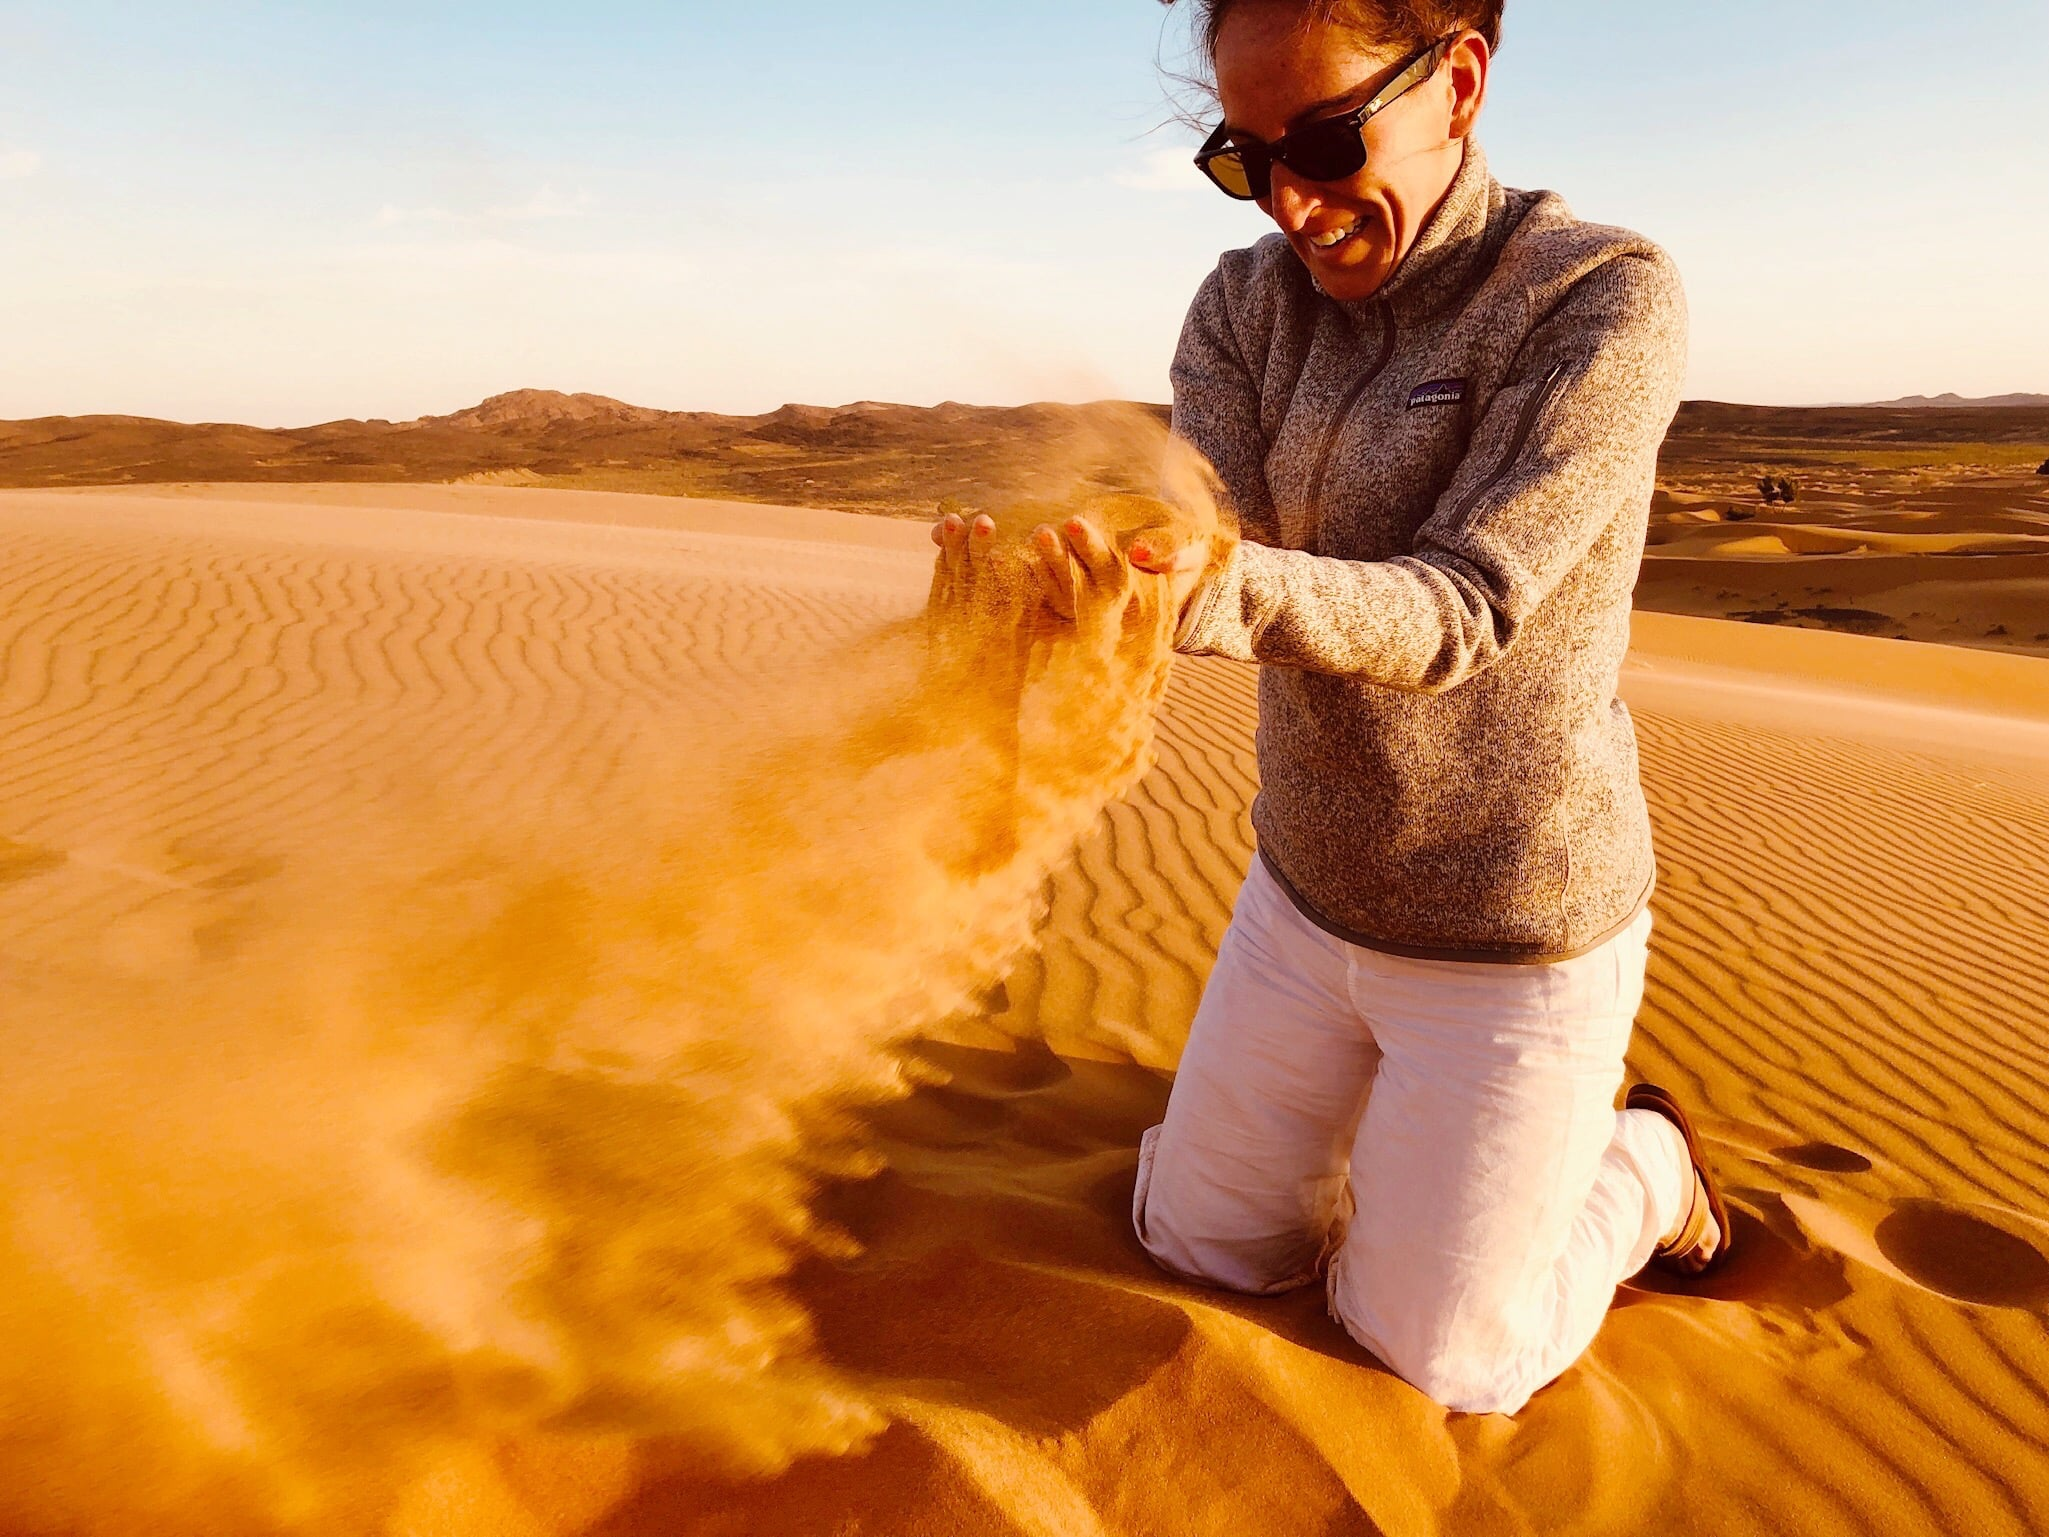 OUR LUXURY DESERT CAMP EXCURSION IN MOROCCO   Morocco Desert Camp - Desert Luxury Camp Morocco - Luxury Desert Camp Morocco - Morocco Sahara Desert Camp - Desert Camp Merzouga Morocco - Erg Chebbi Camp Morocco - Camping Morocco - Best Luxury Desert Camp Morocco - Sahara Desert Camp - Dar Jnan Tiouira - Erg Chebbi Sand Dunes - Morocco Travel Blog - #morocco #saharadesert #travelblog